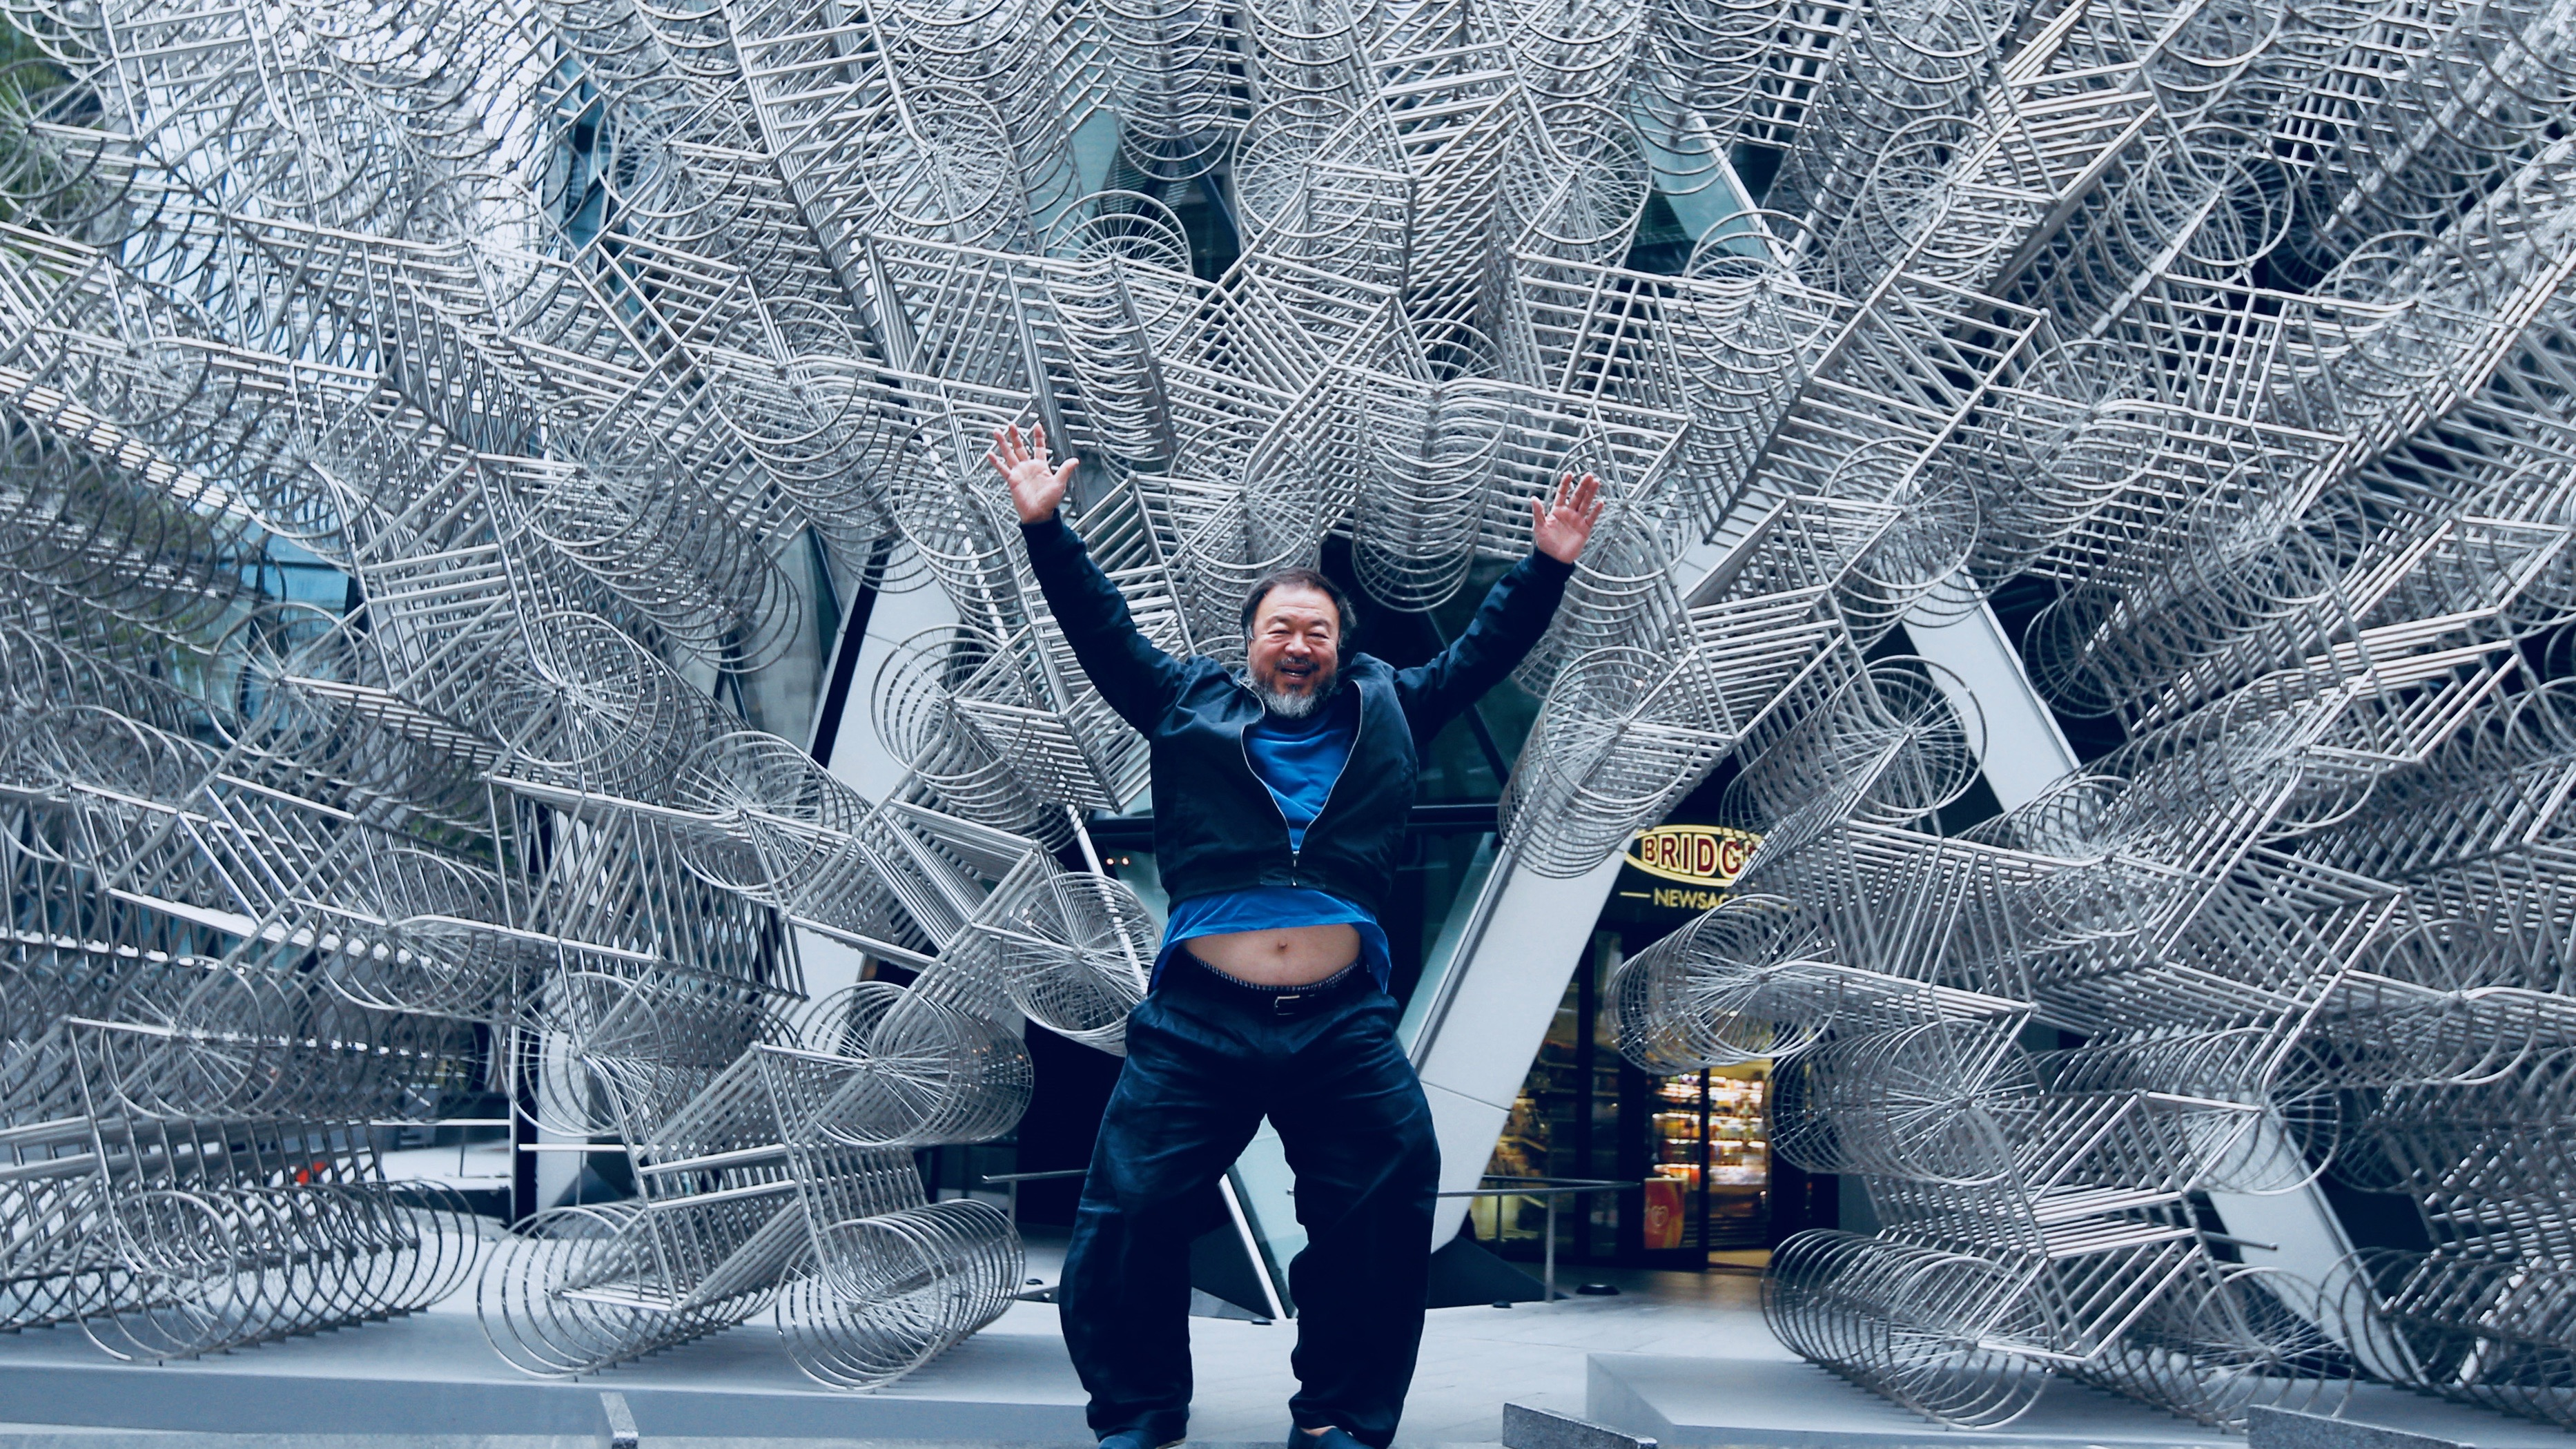 Artist Ai Weiwei visits his sculpture, 'Forever' in London in 2015.